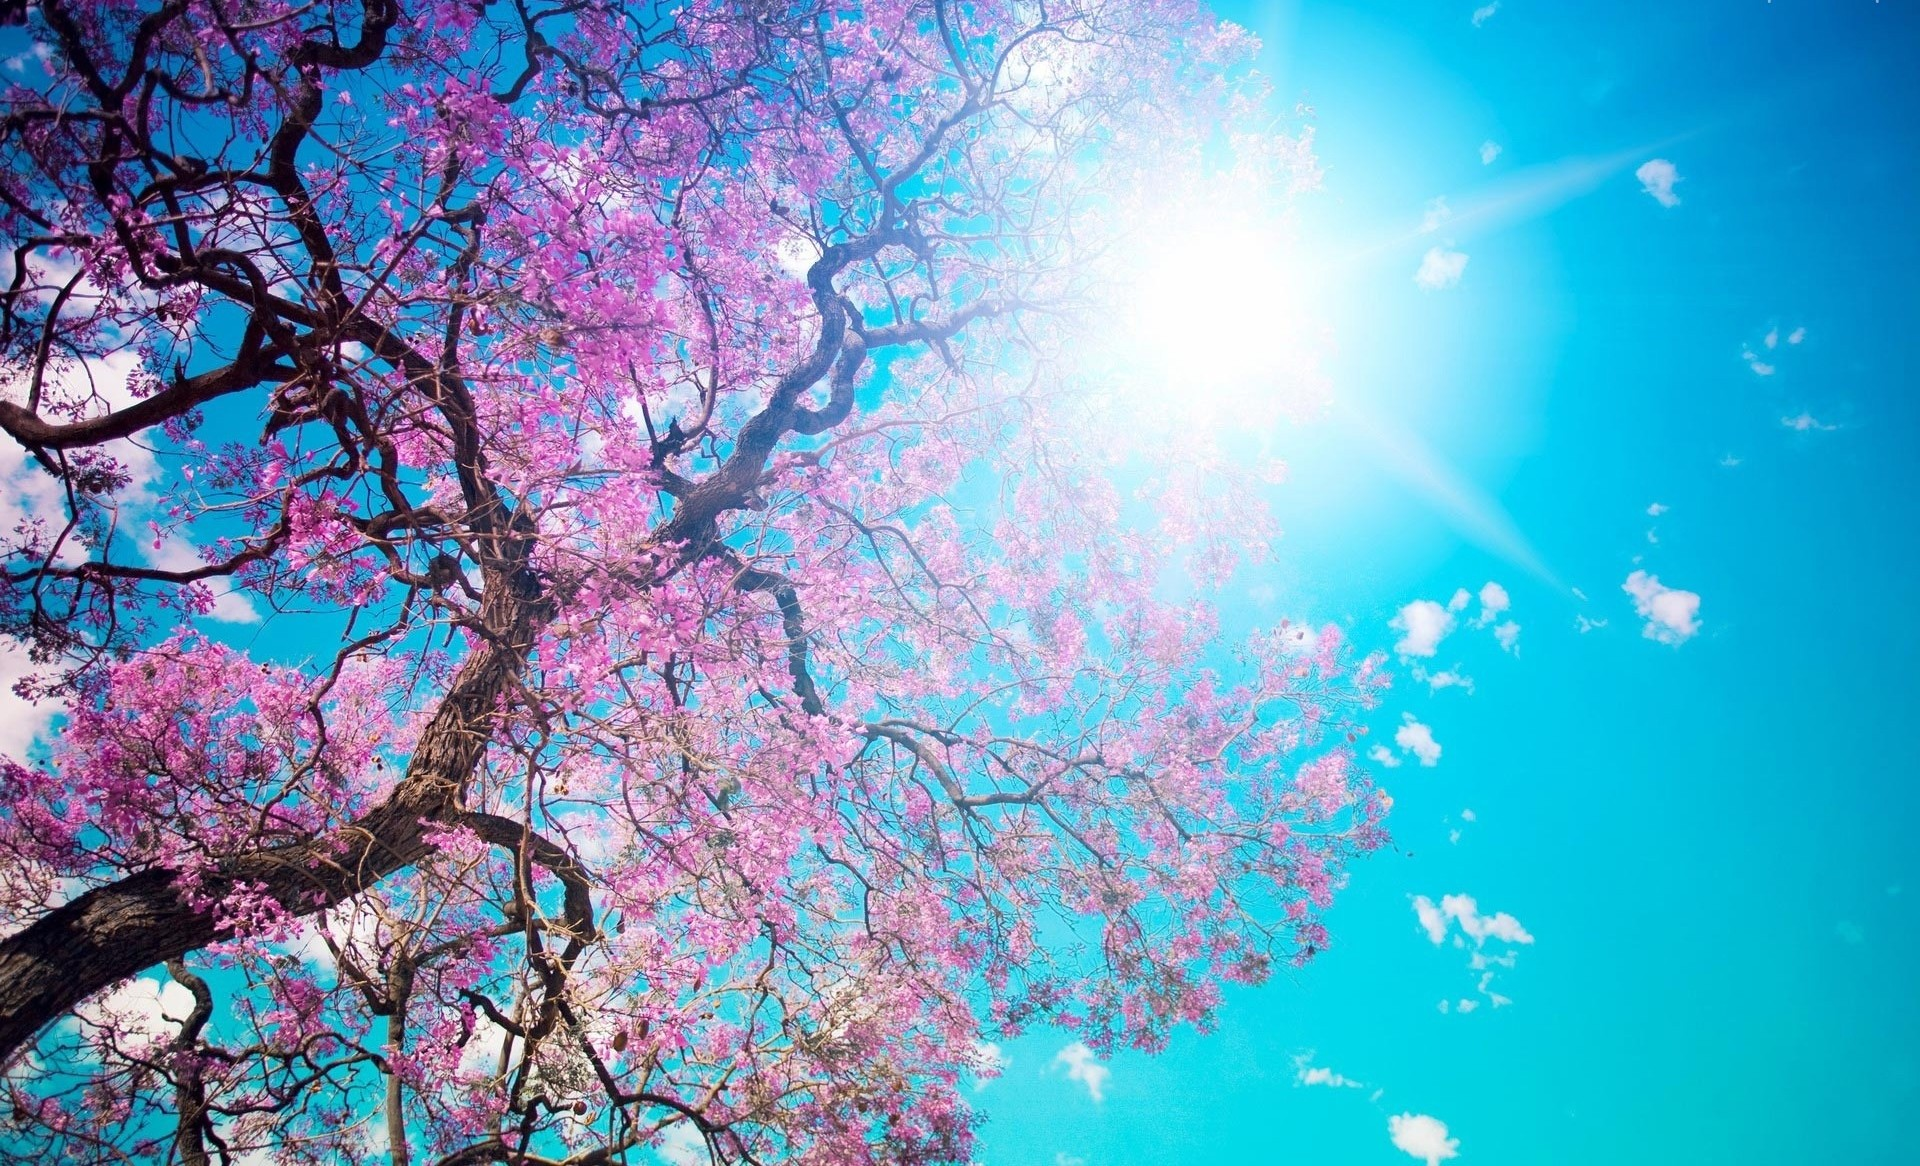 1920x1166 Spring-Trees-And-Flowers-Background-Image-3.jpg